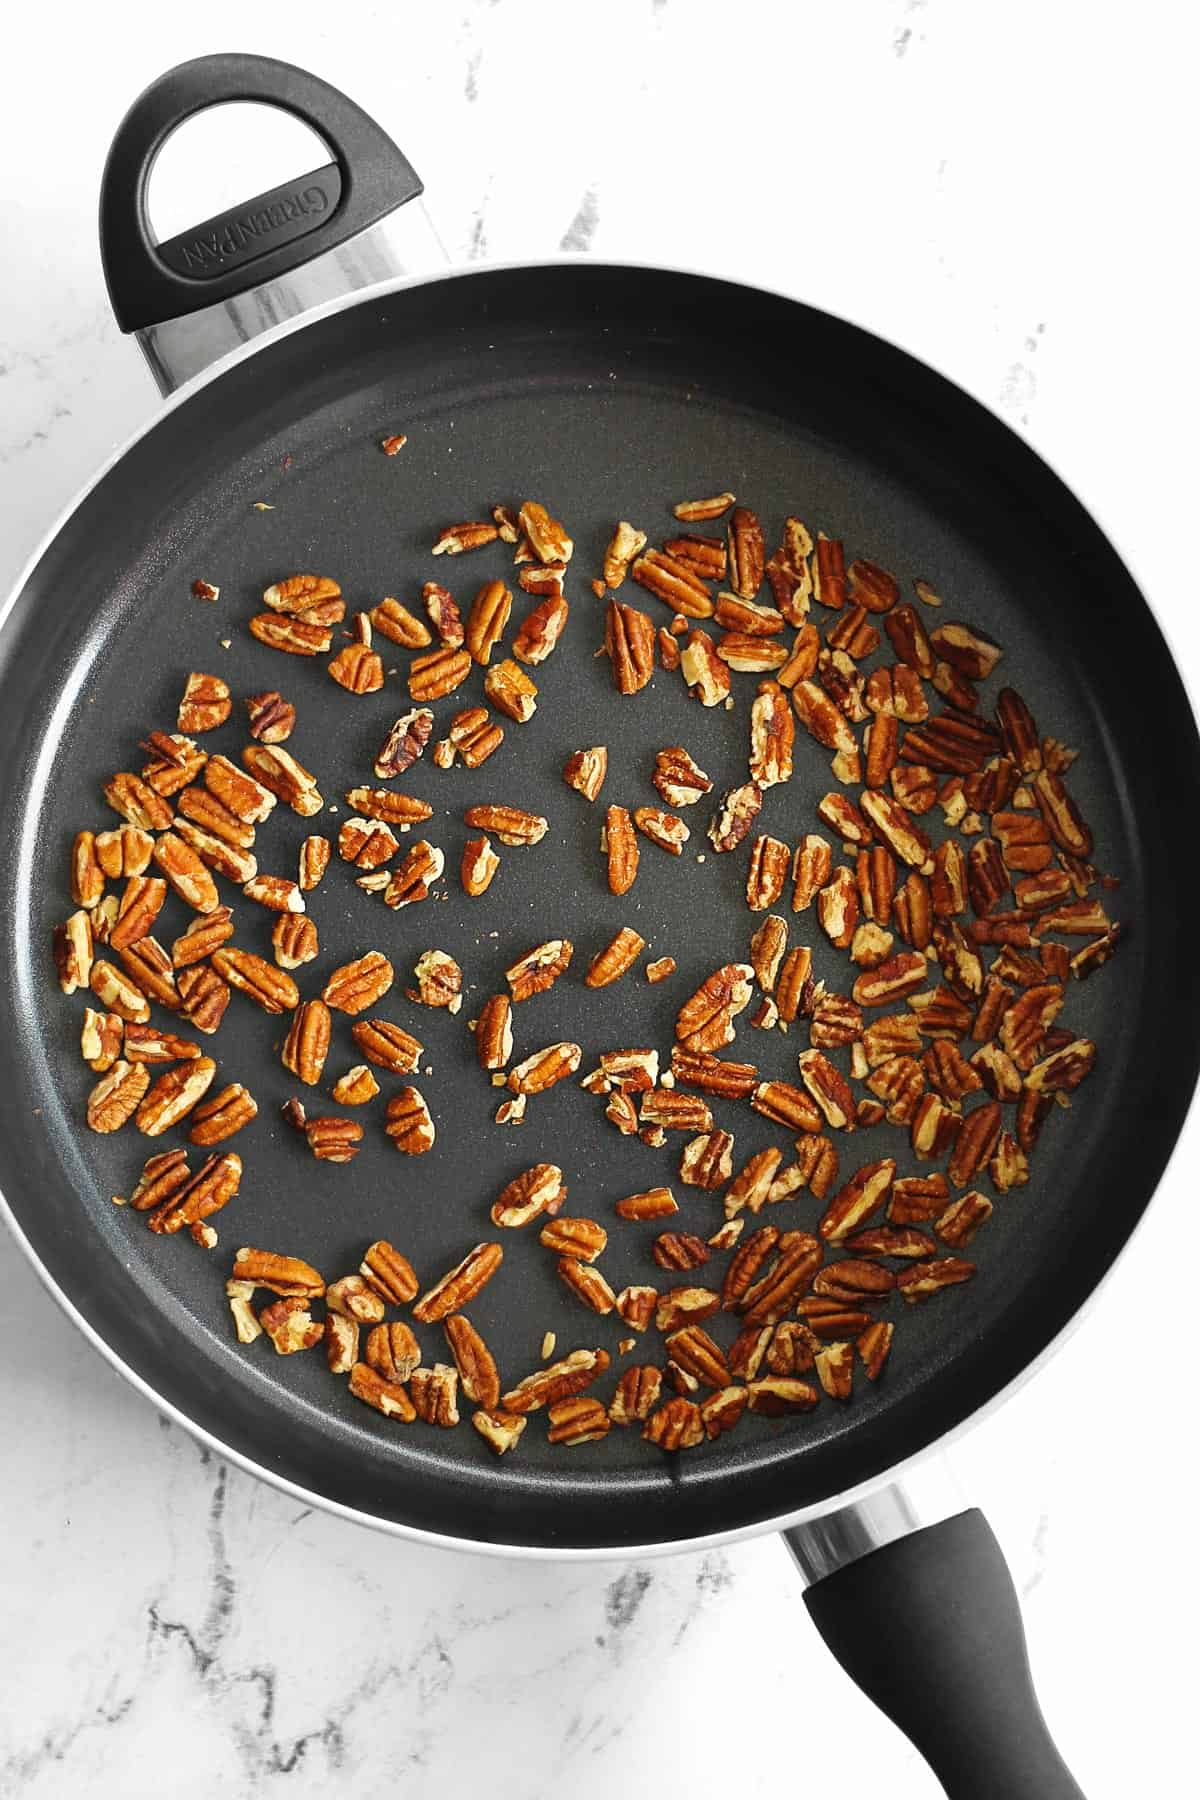 Toasted pecans in a skillet